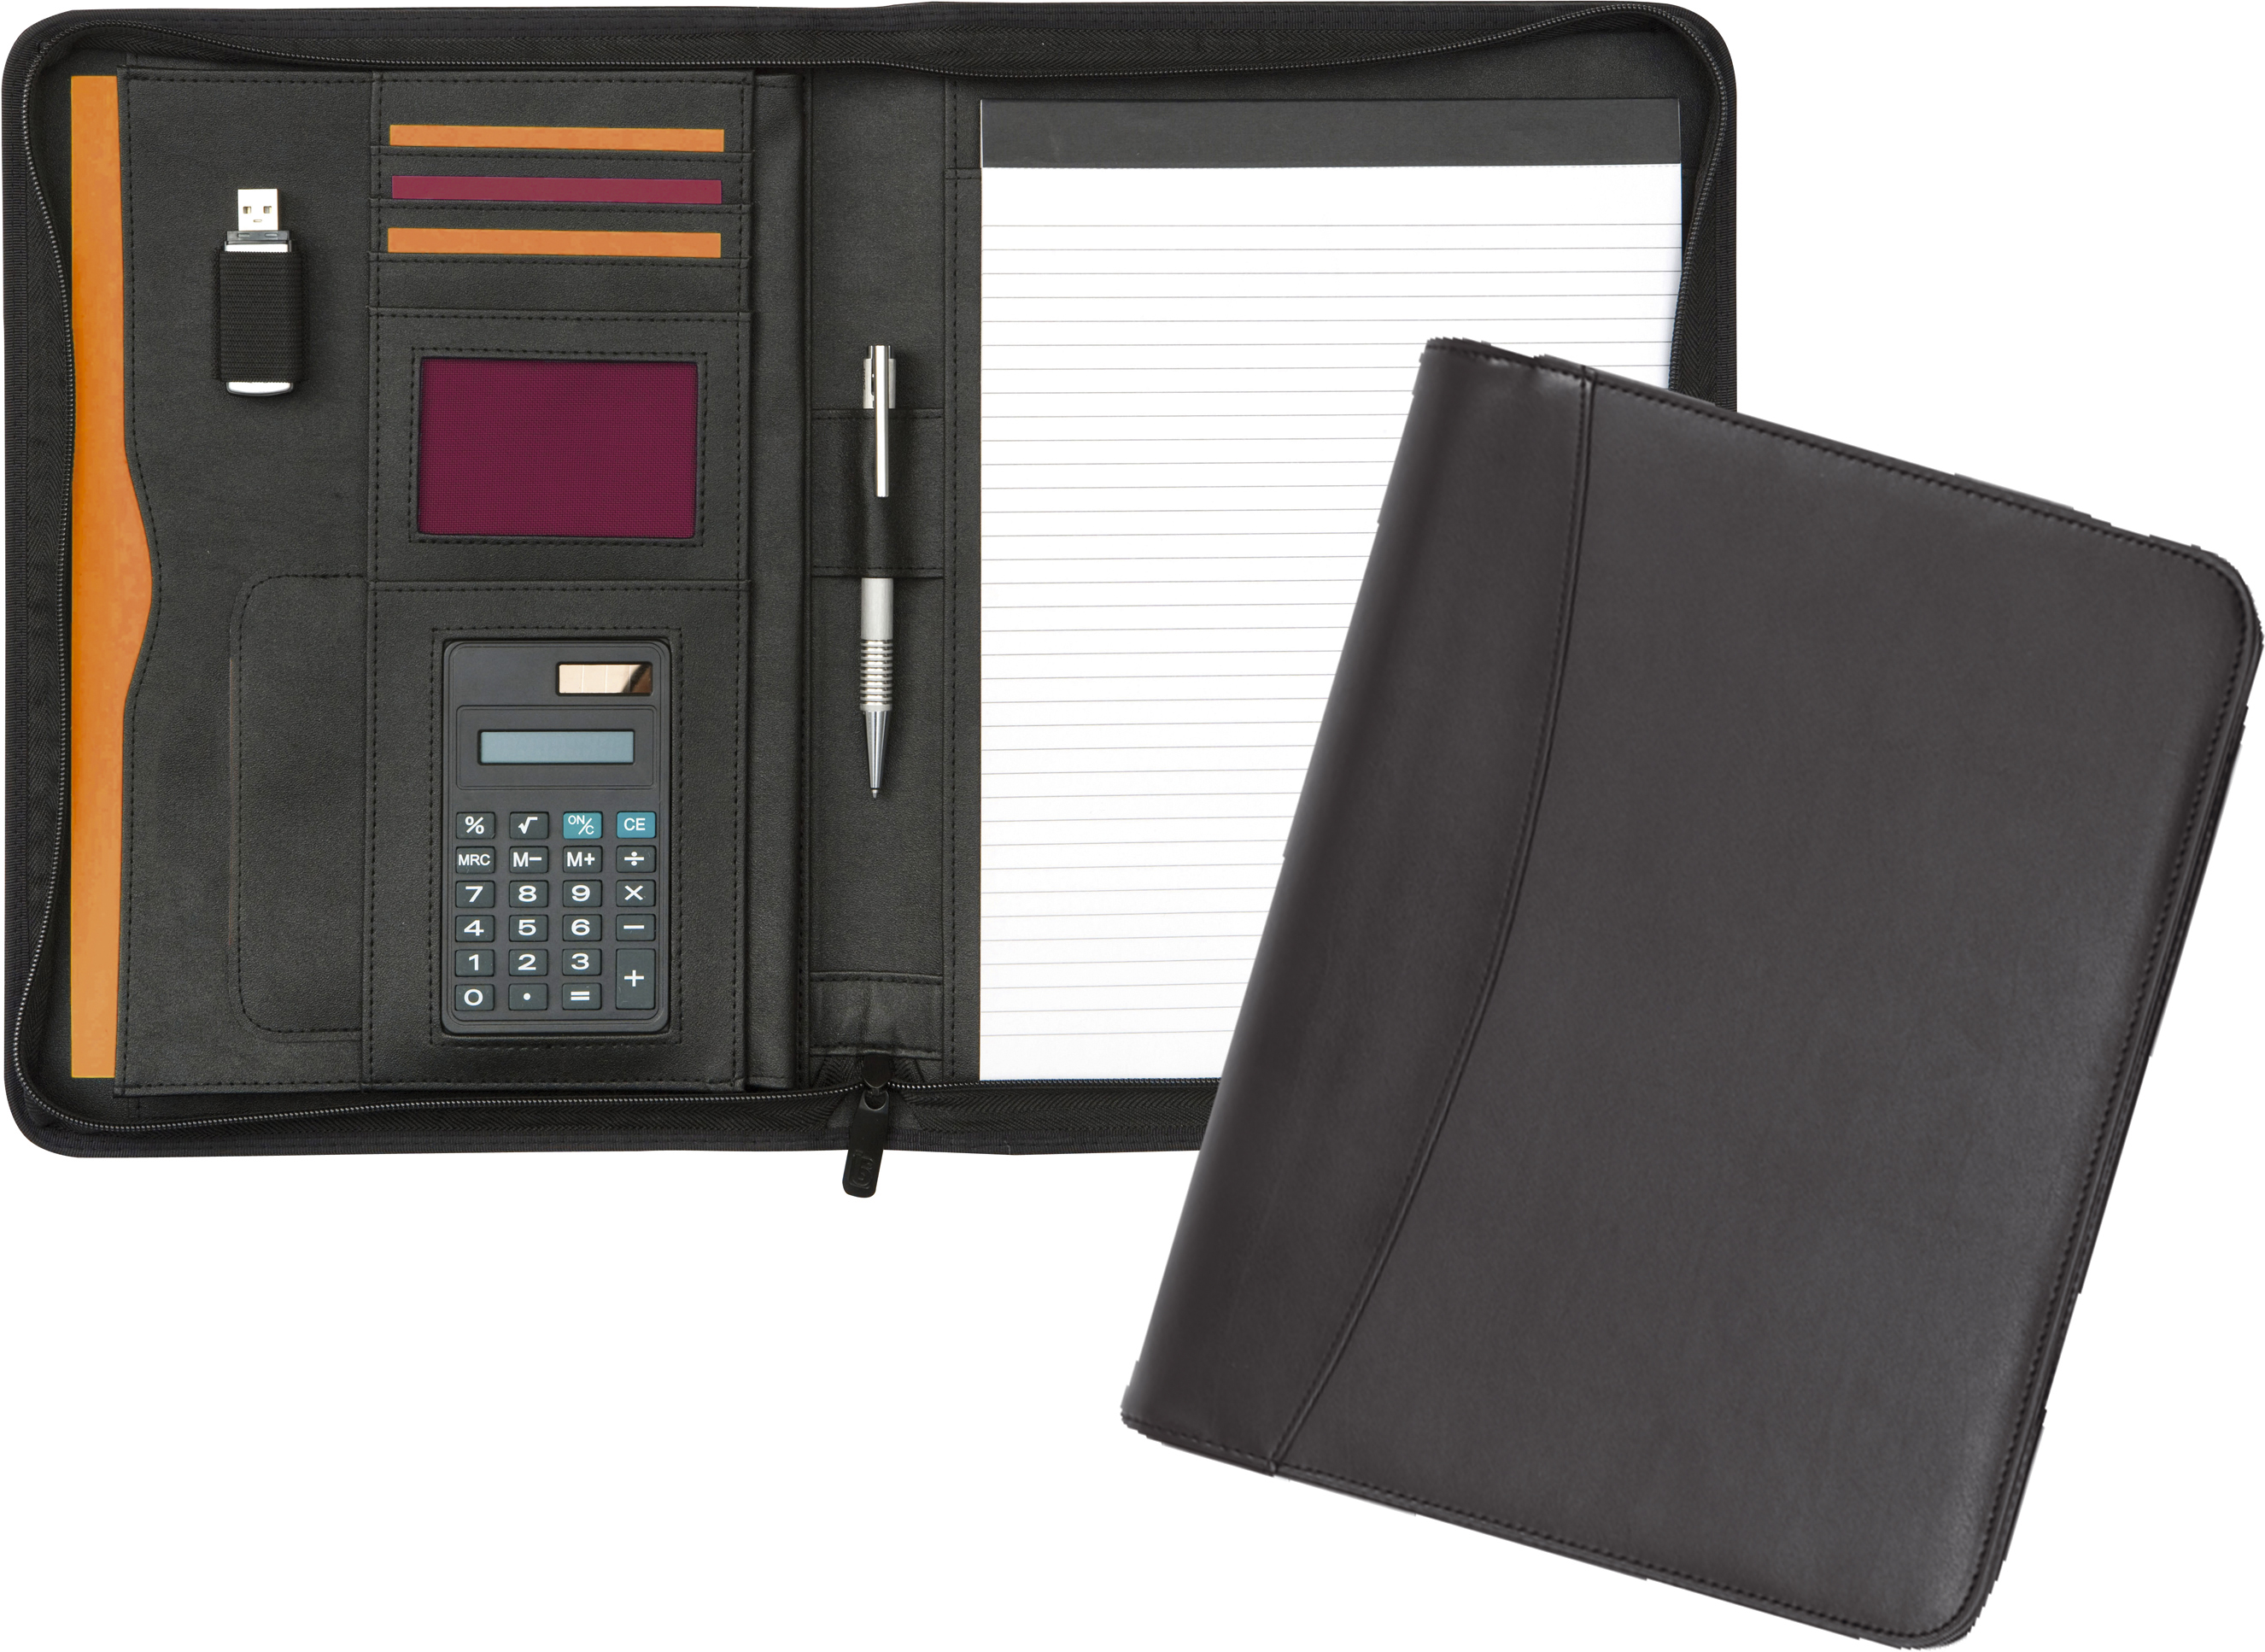 Promotional Pembury Zipped Calcufolder Folder A4